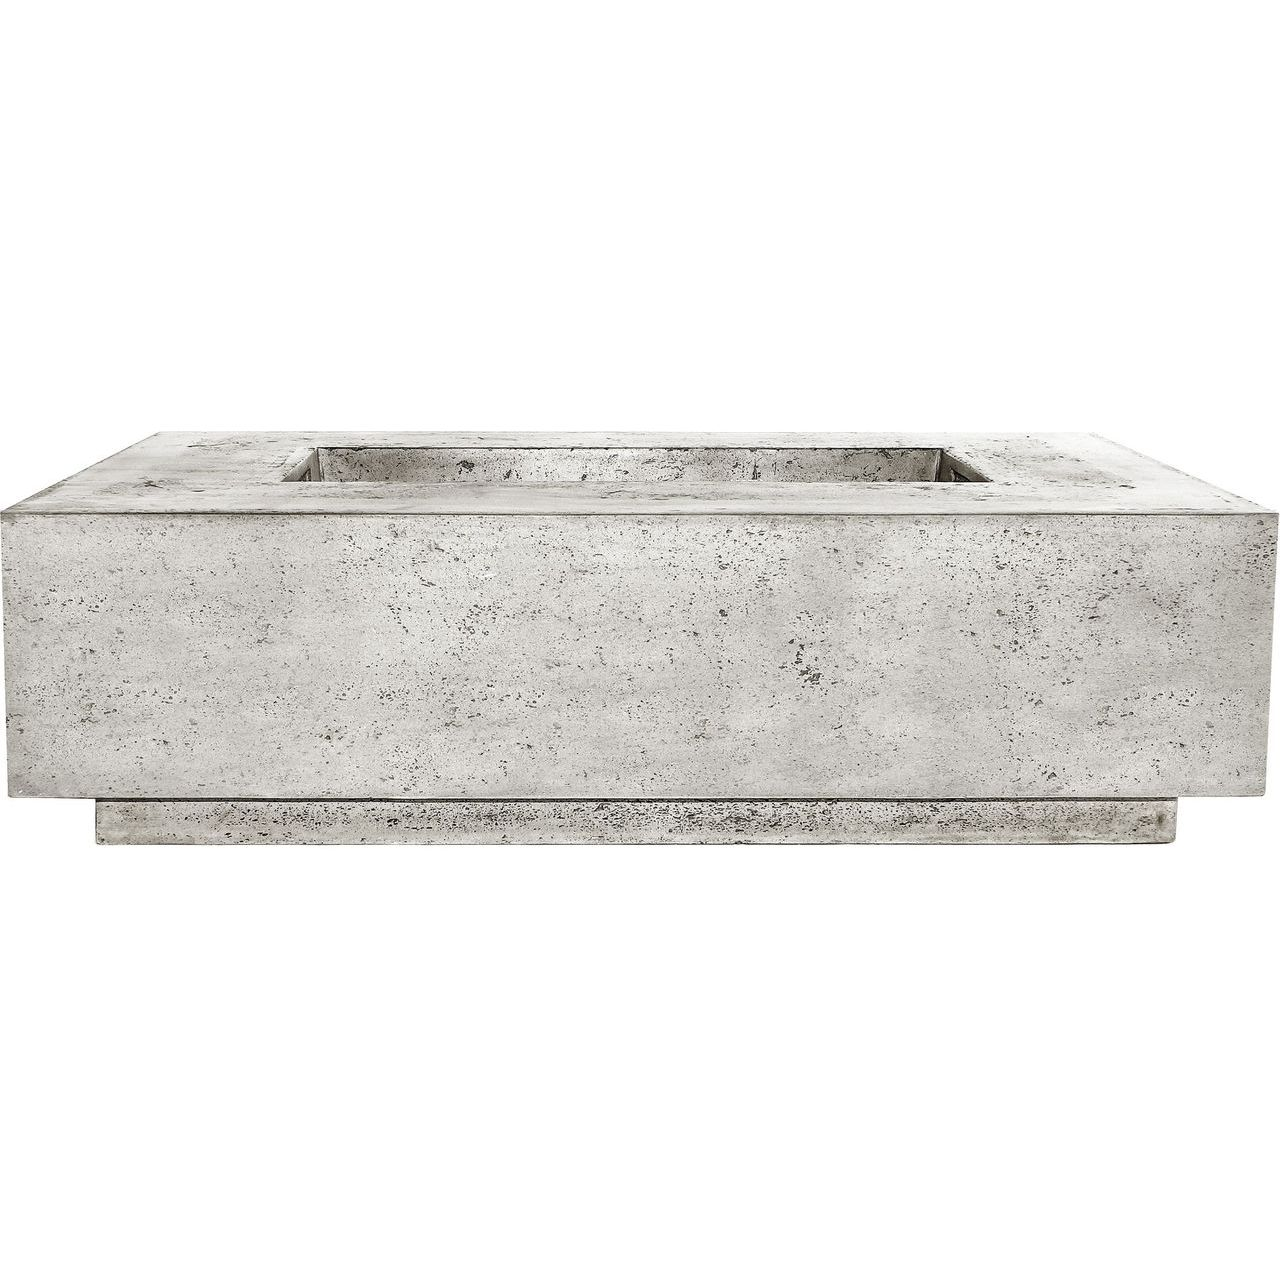 Prism Hardscapes Tavola 1 Fire Table in Natural - NG